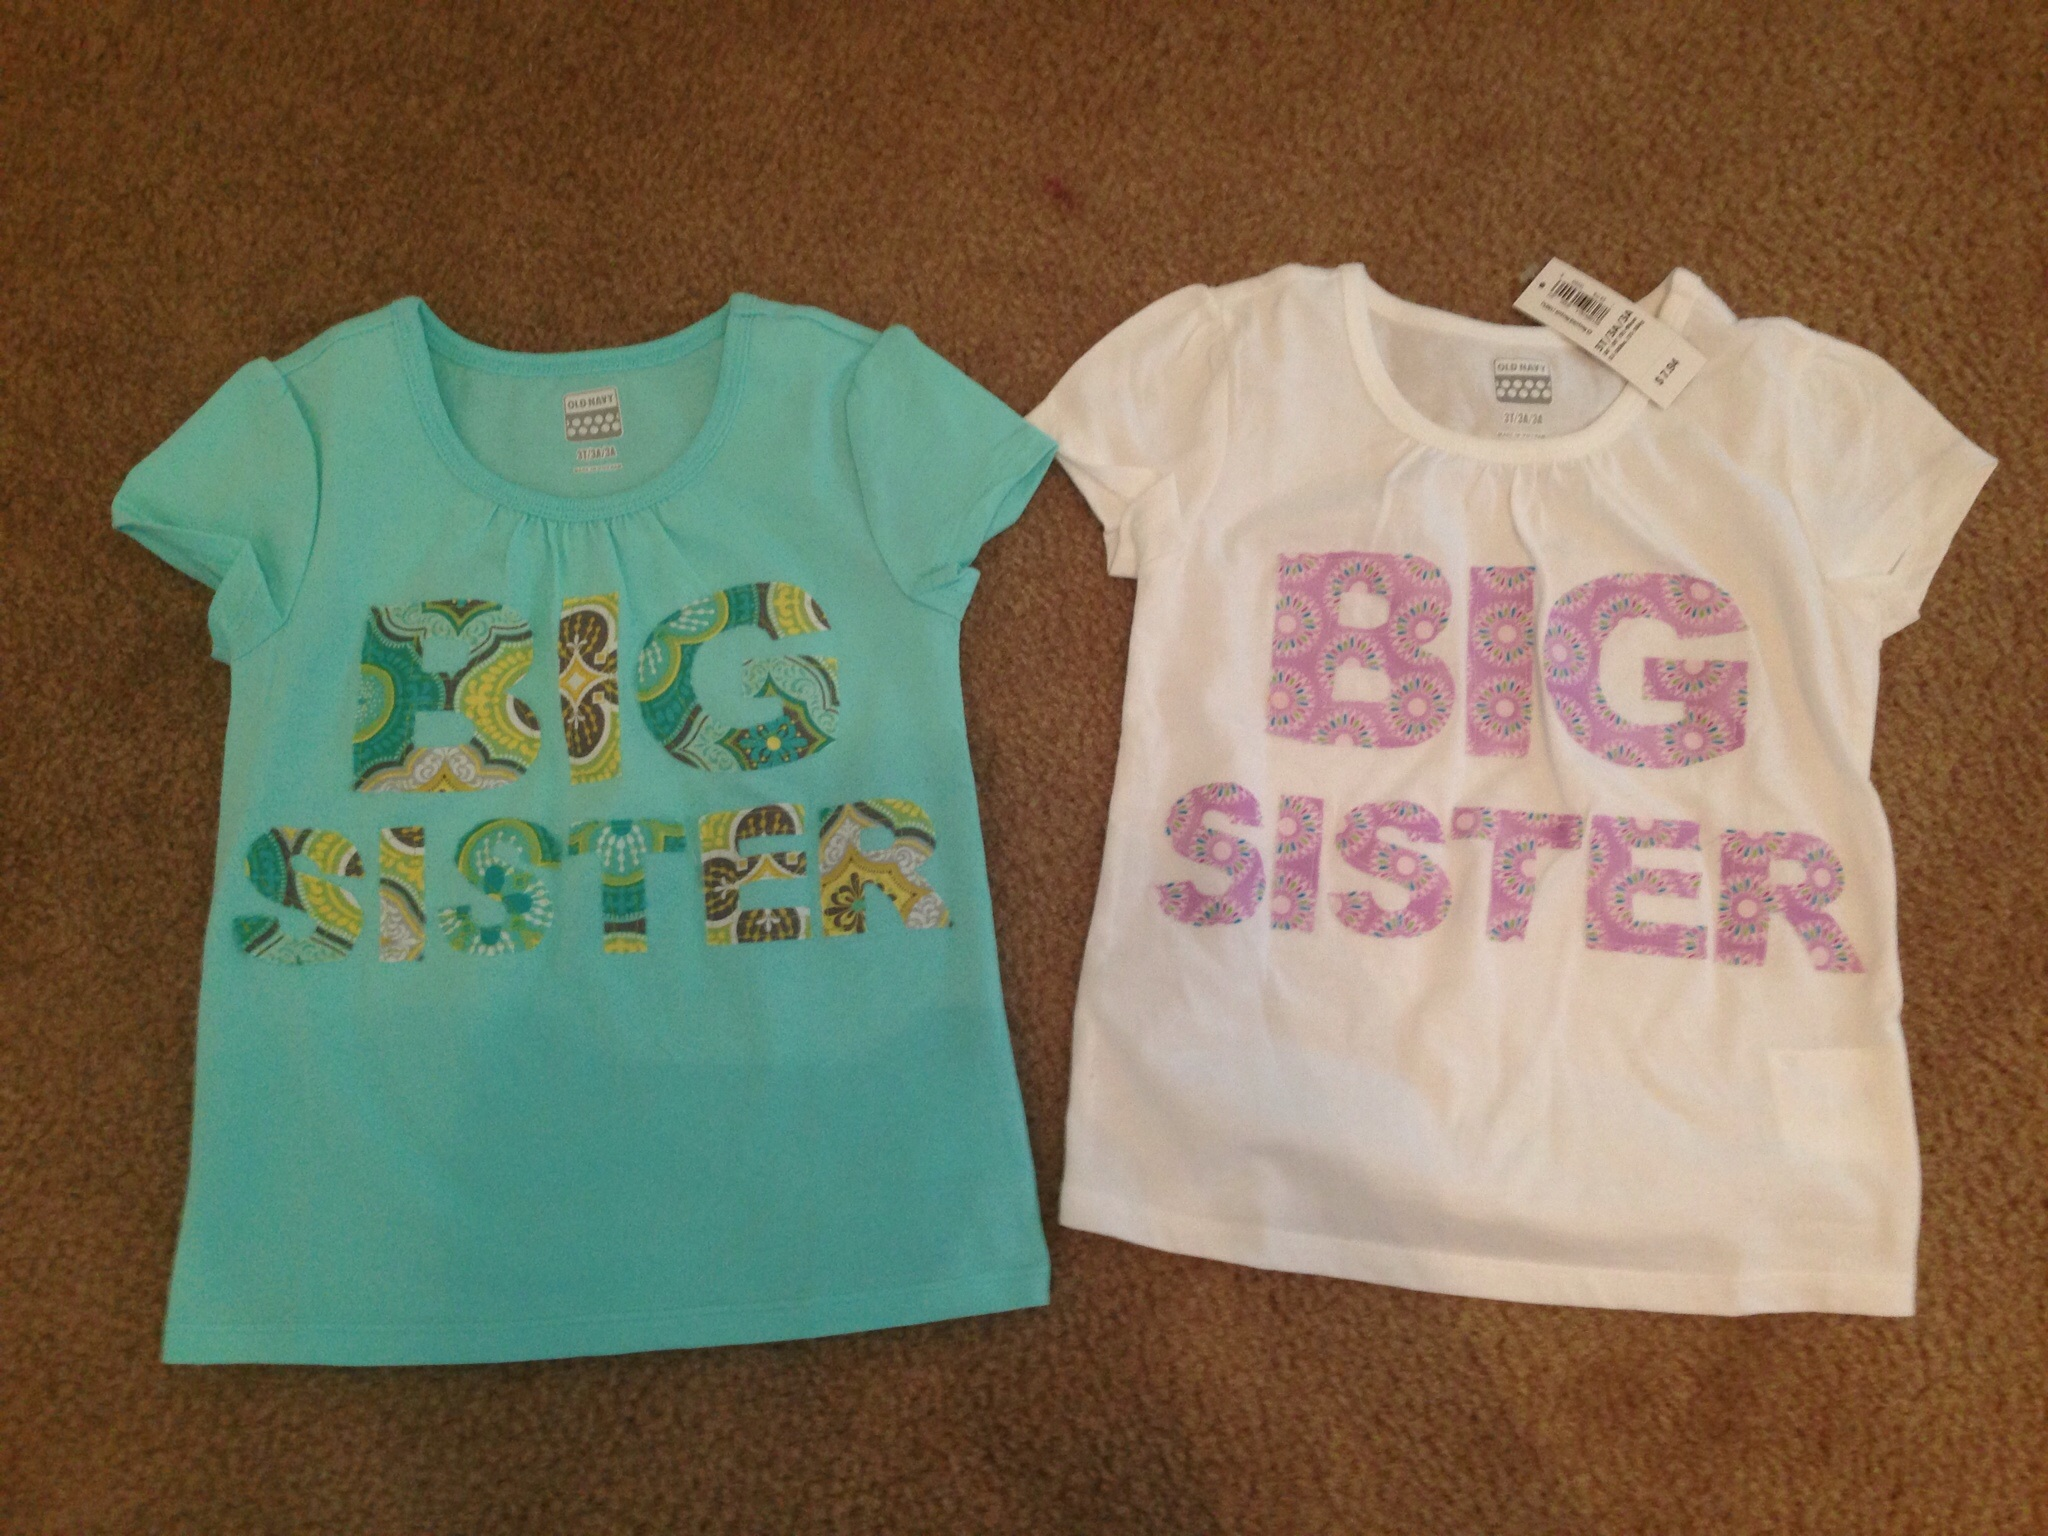 Big & Little Sister A new bundle of joy is here, and it's time to let everyone know who the big sister is! From clothing to picture books, the Big & Little Sister section at northtercessbudh.cf has everything a girl needs to take on her exciting new role.